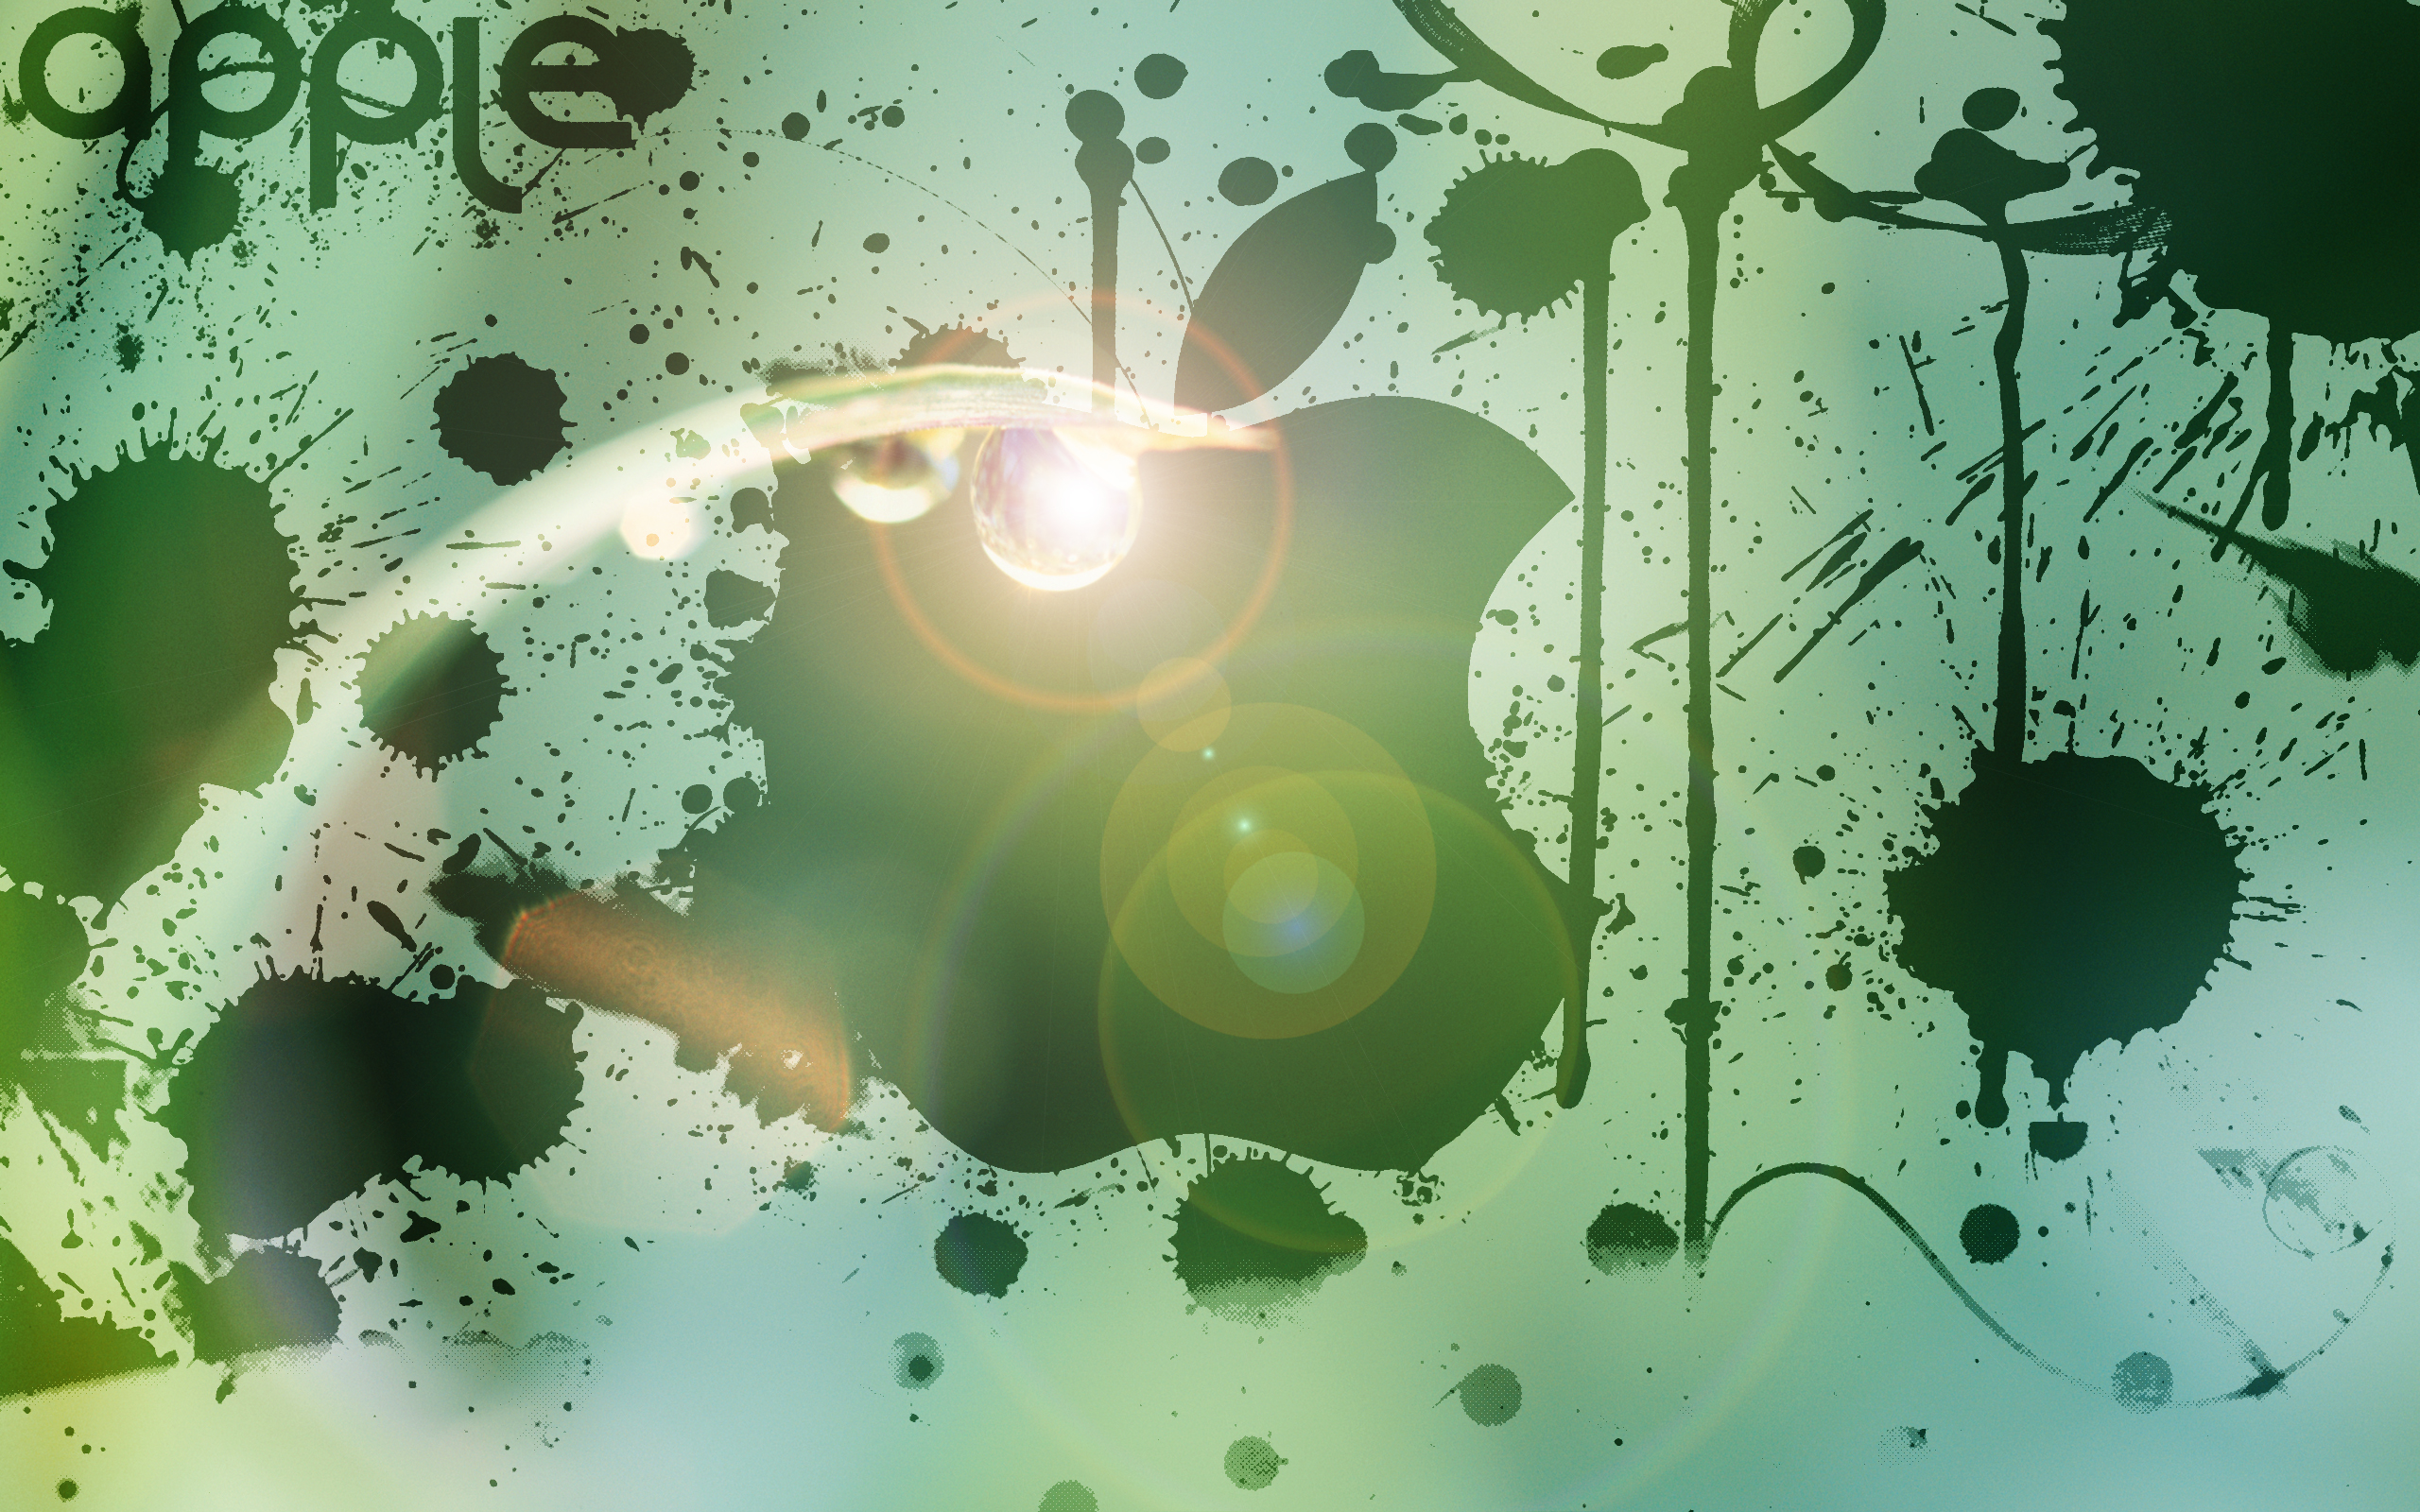 wallpapers manzana verde mac - photo #1